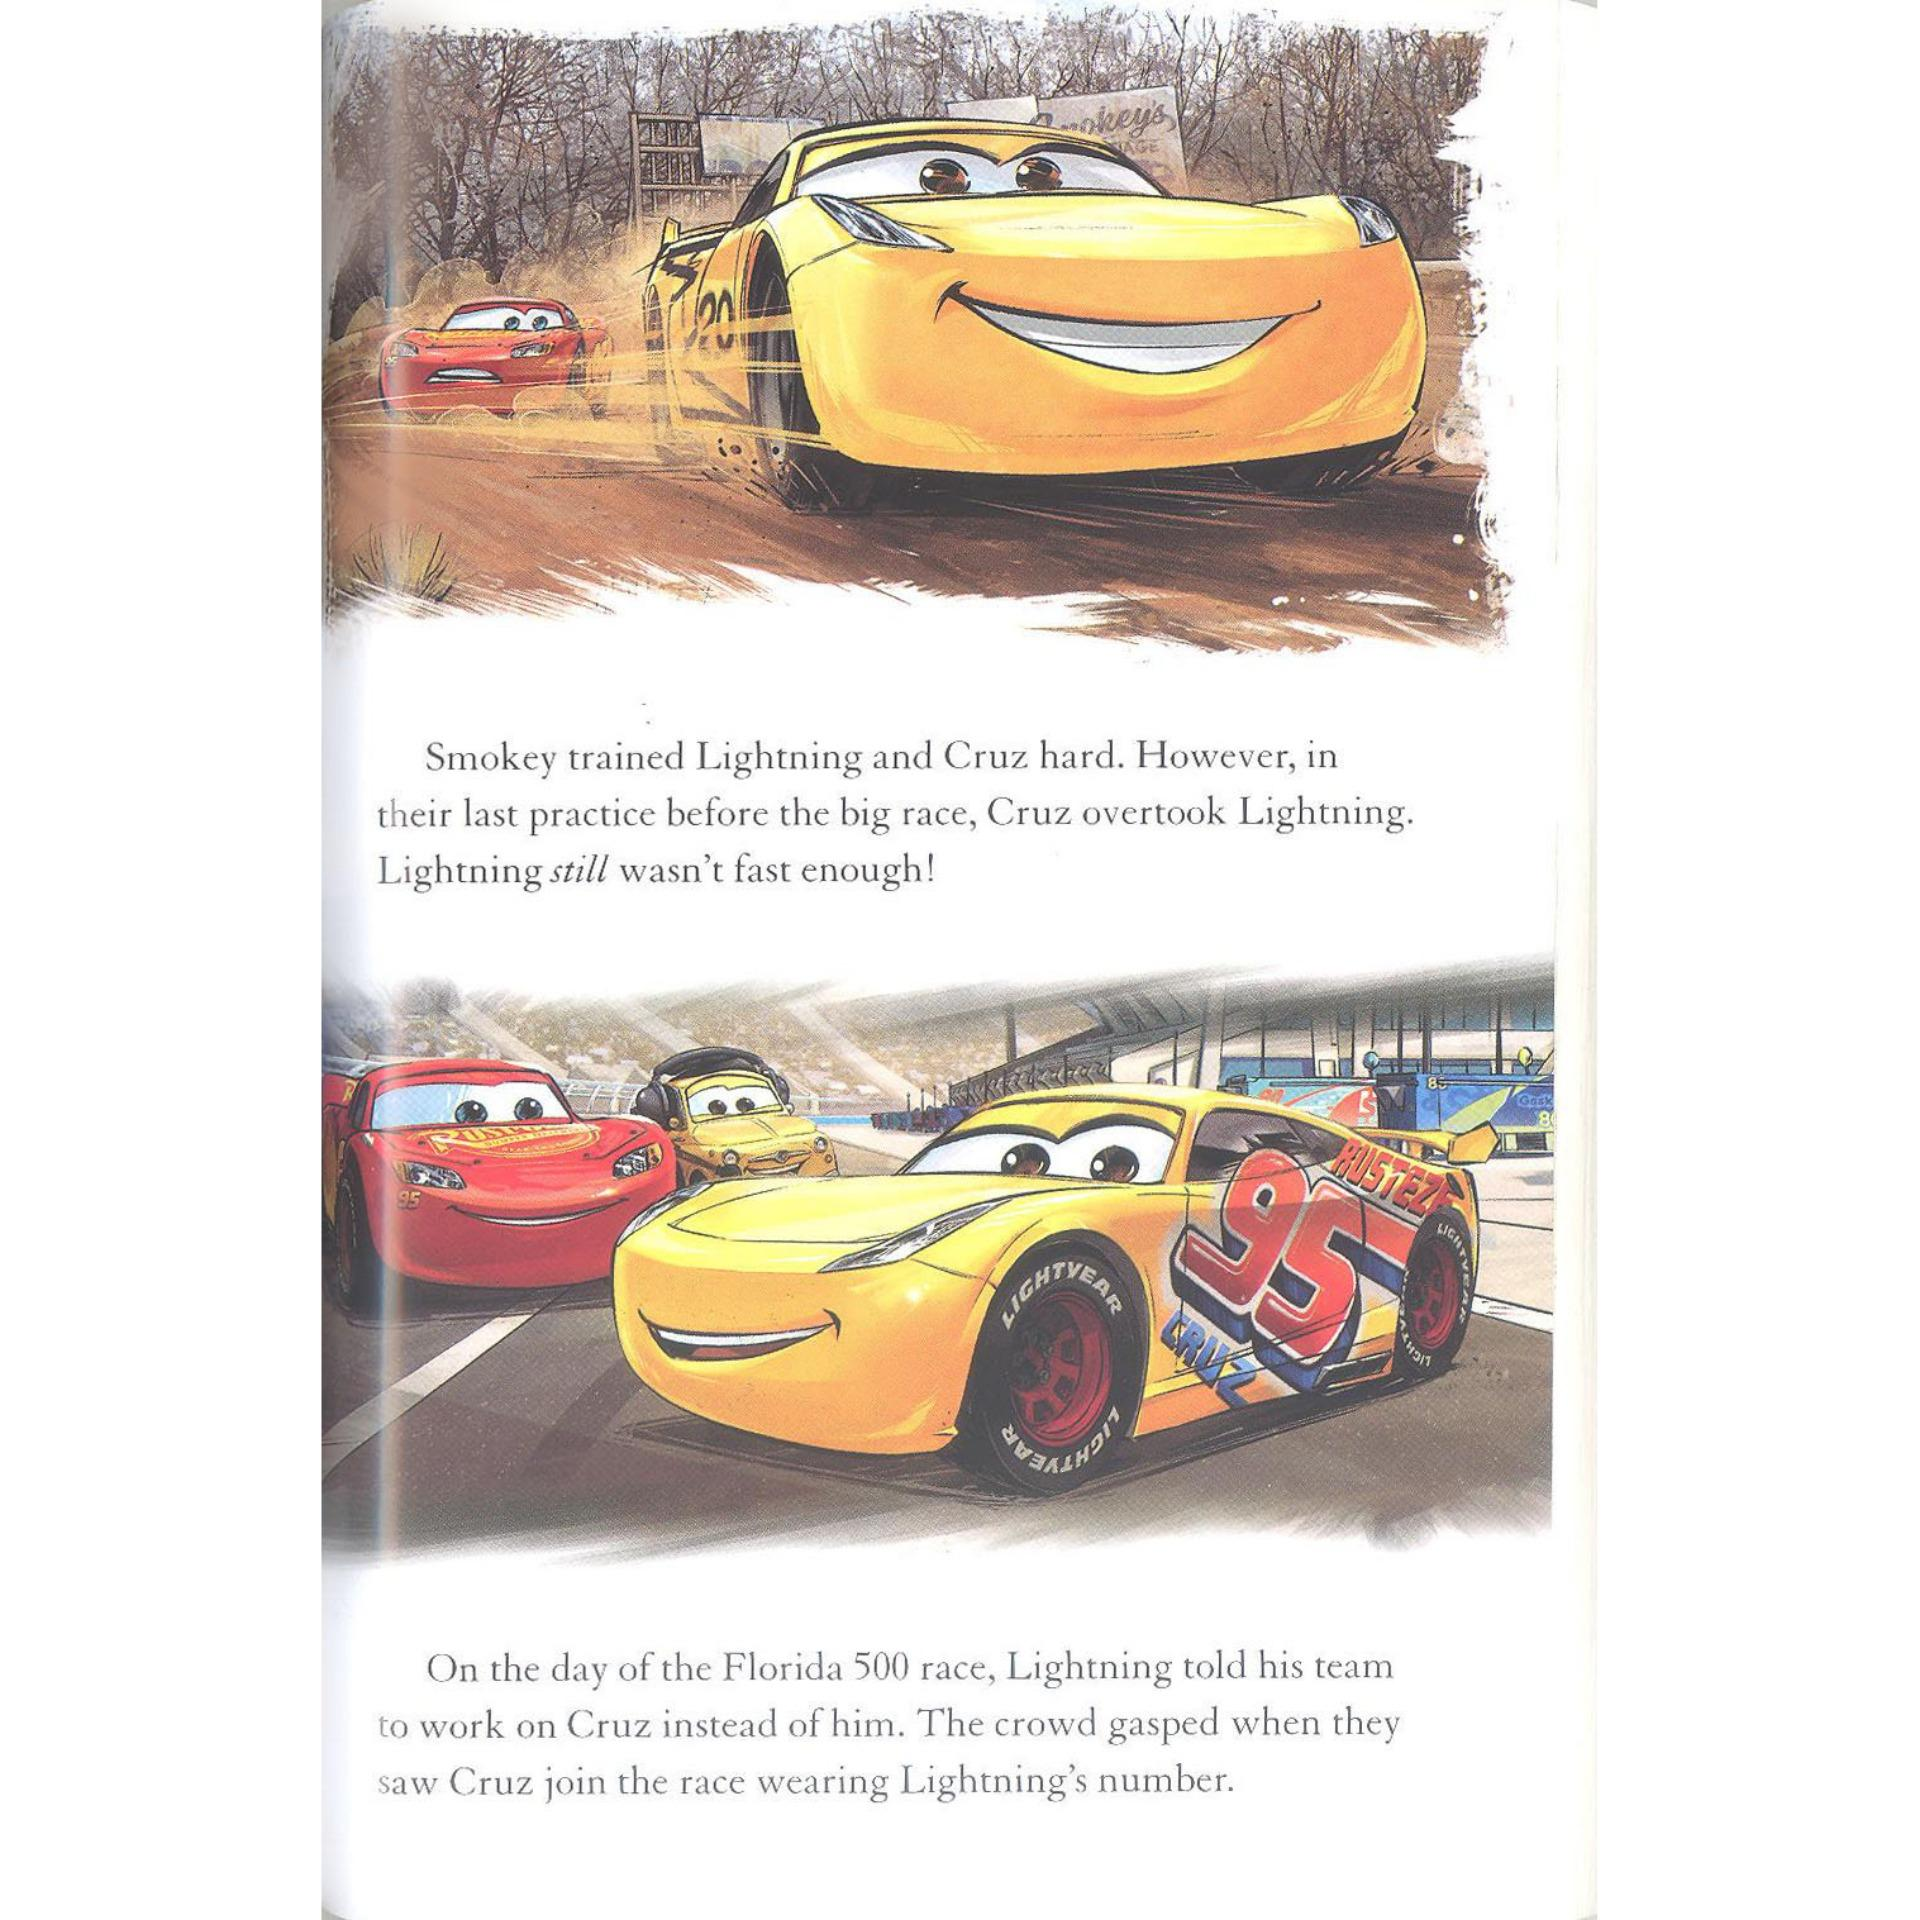 Philippines Ws Disney Book Of The Film Cars 3 Compare Prices Race Car Wiring Books